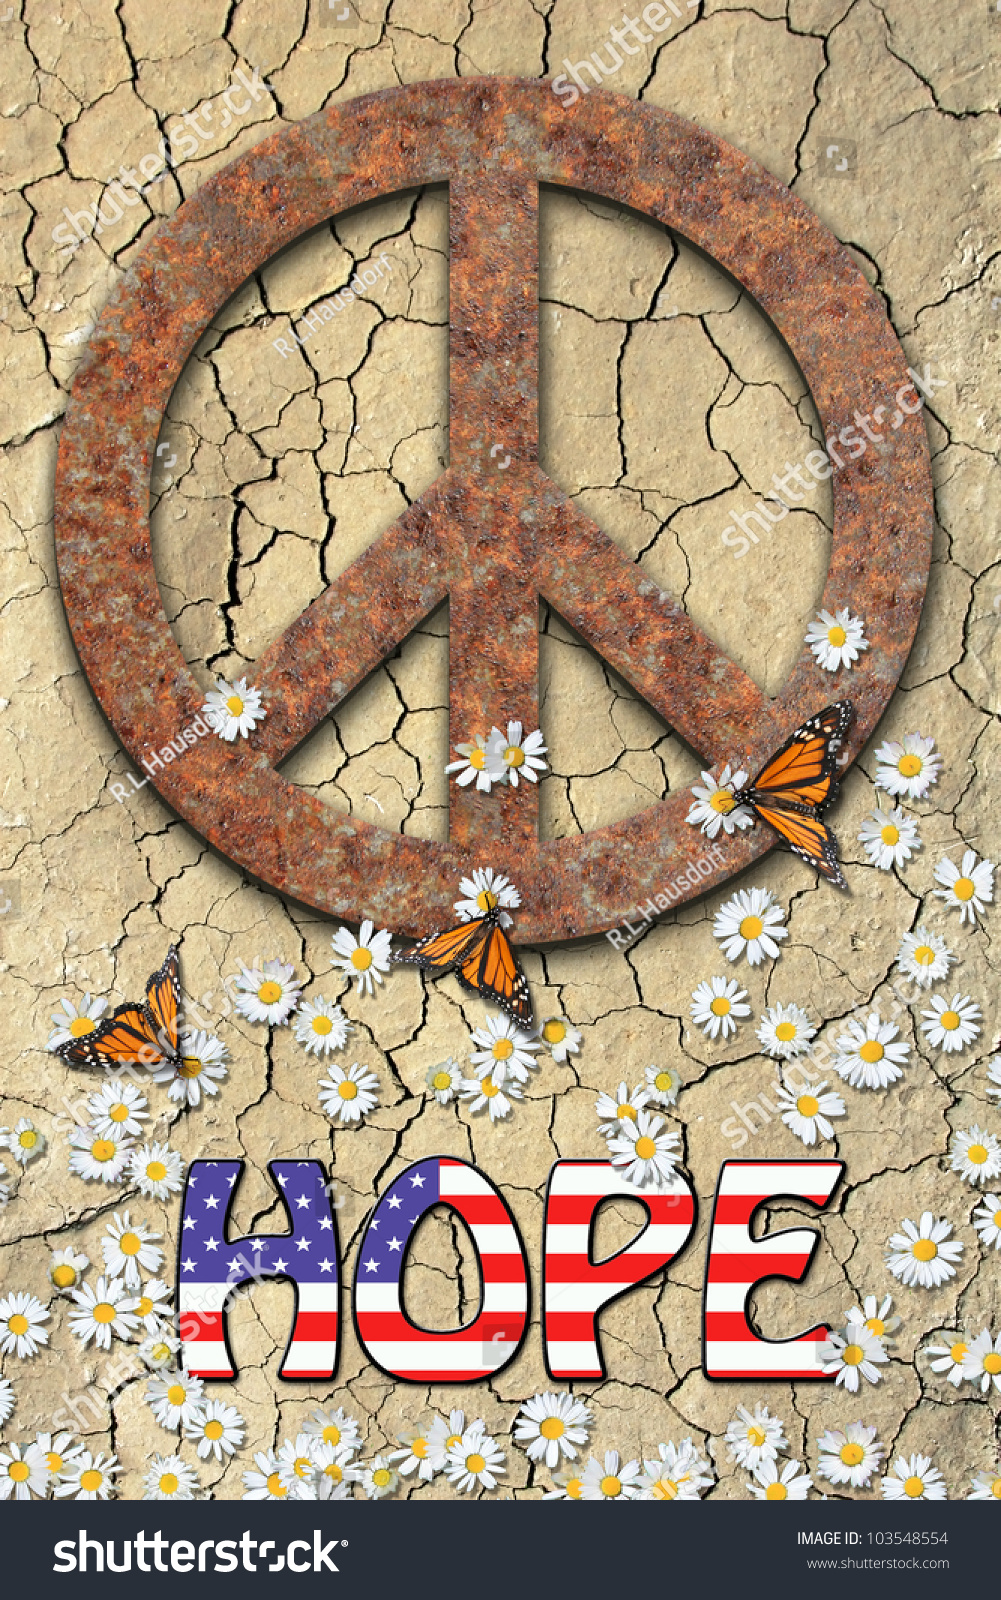 Rusted peace symbol daisies butterflies word stock photo 103548554 rusted peace symbol daisies butterflies and the word hope with an american flag biocorpaavc Images